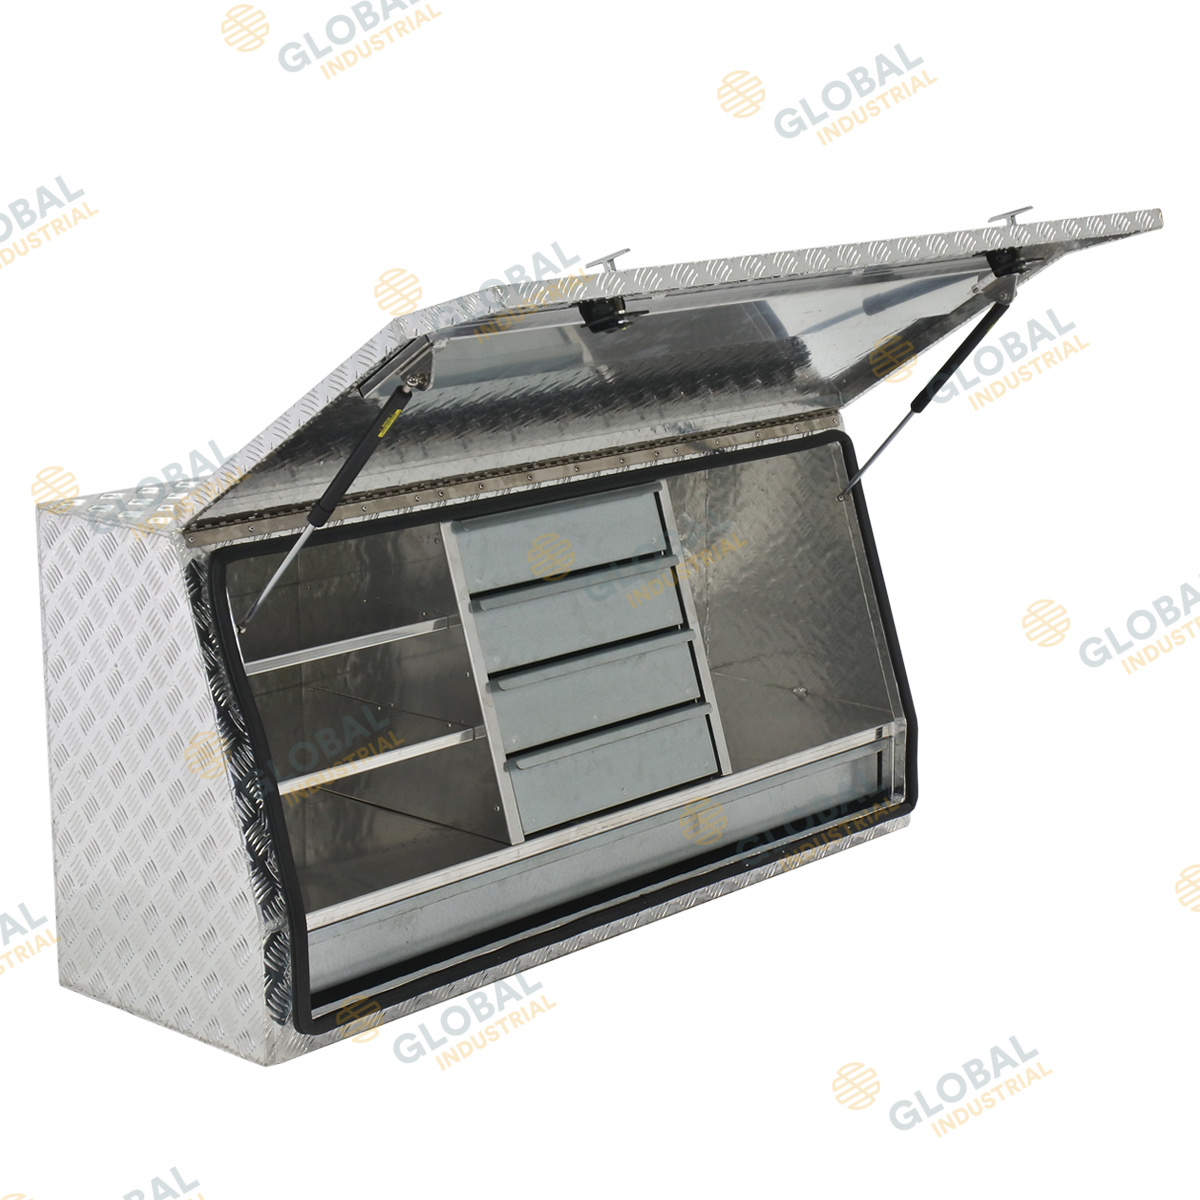 Half Height Lockers moreover Traditional Toolmakers Tool Chest Available Again From Chronos likewise Drawers further Mega Chest Toolbox 2200mm Std Door as well Aluminium Toolbox With Drawers. on locking storage drawers